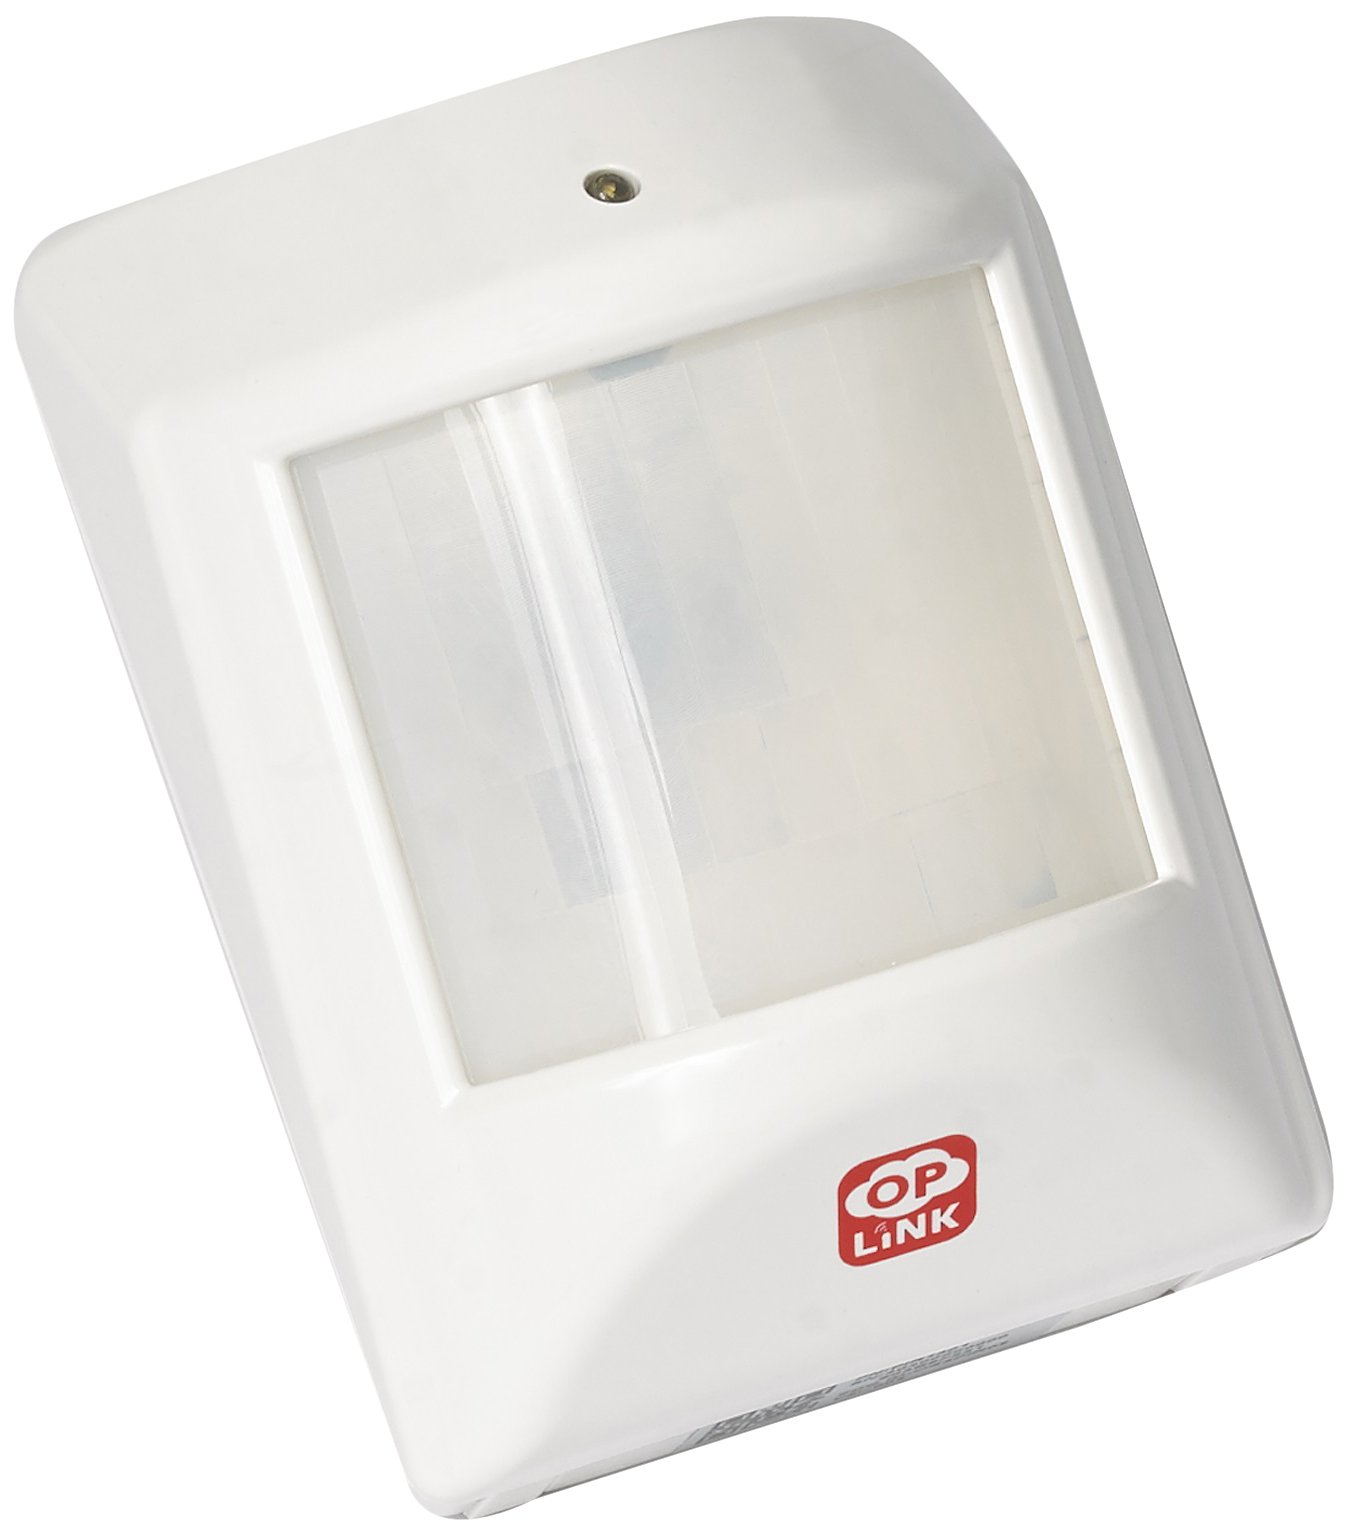 Oplink Connected PIR1301 Motion Sensor (White)